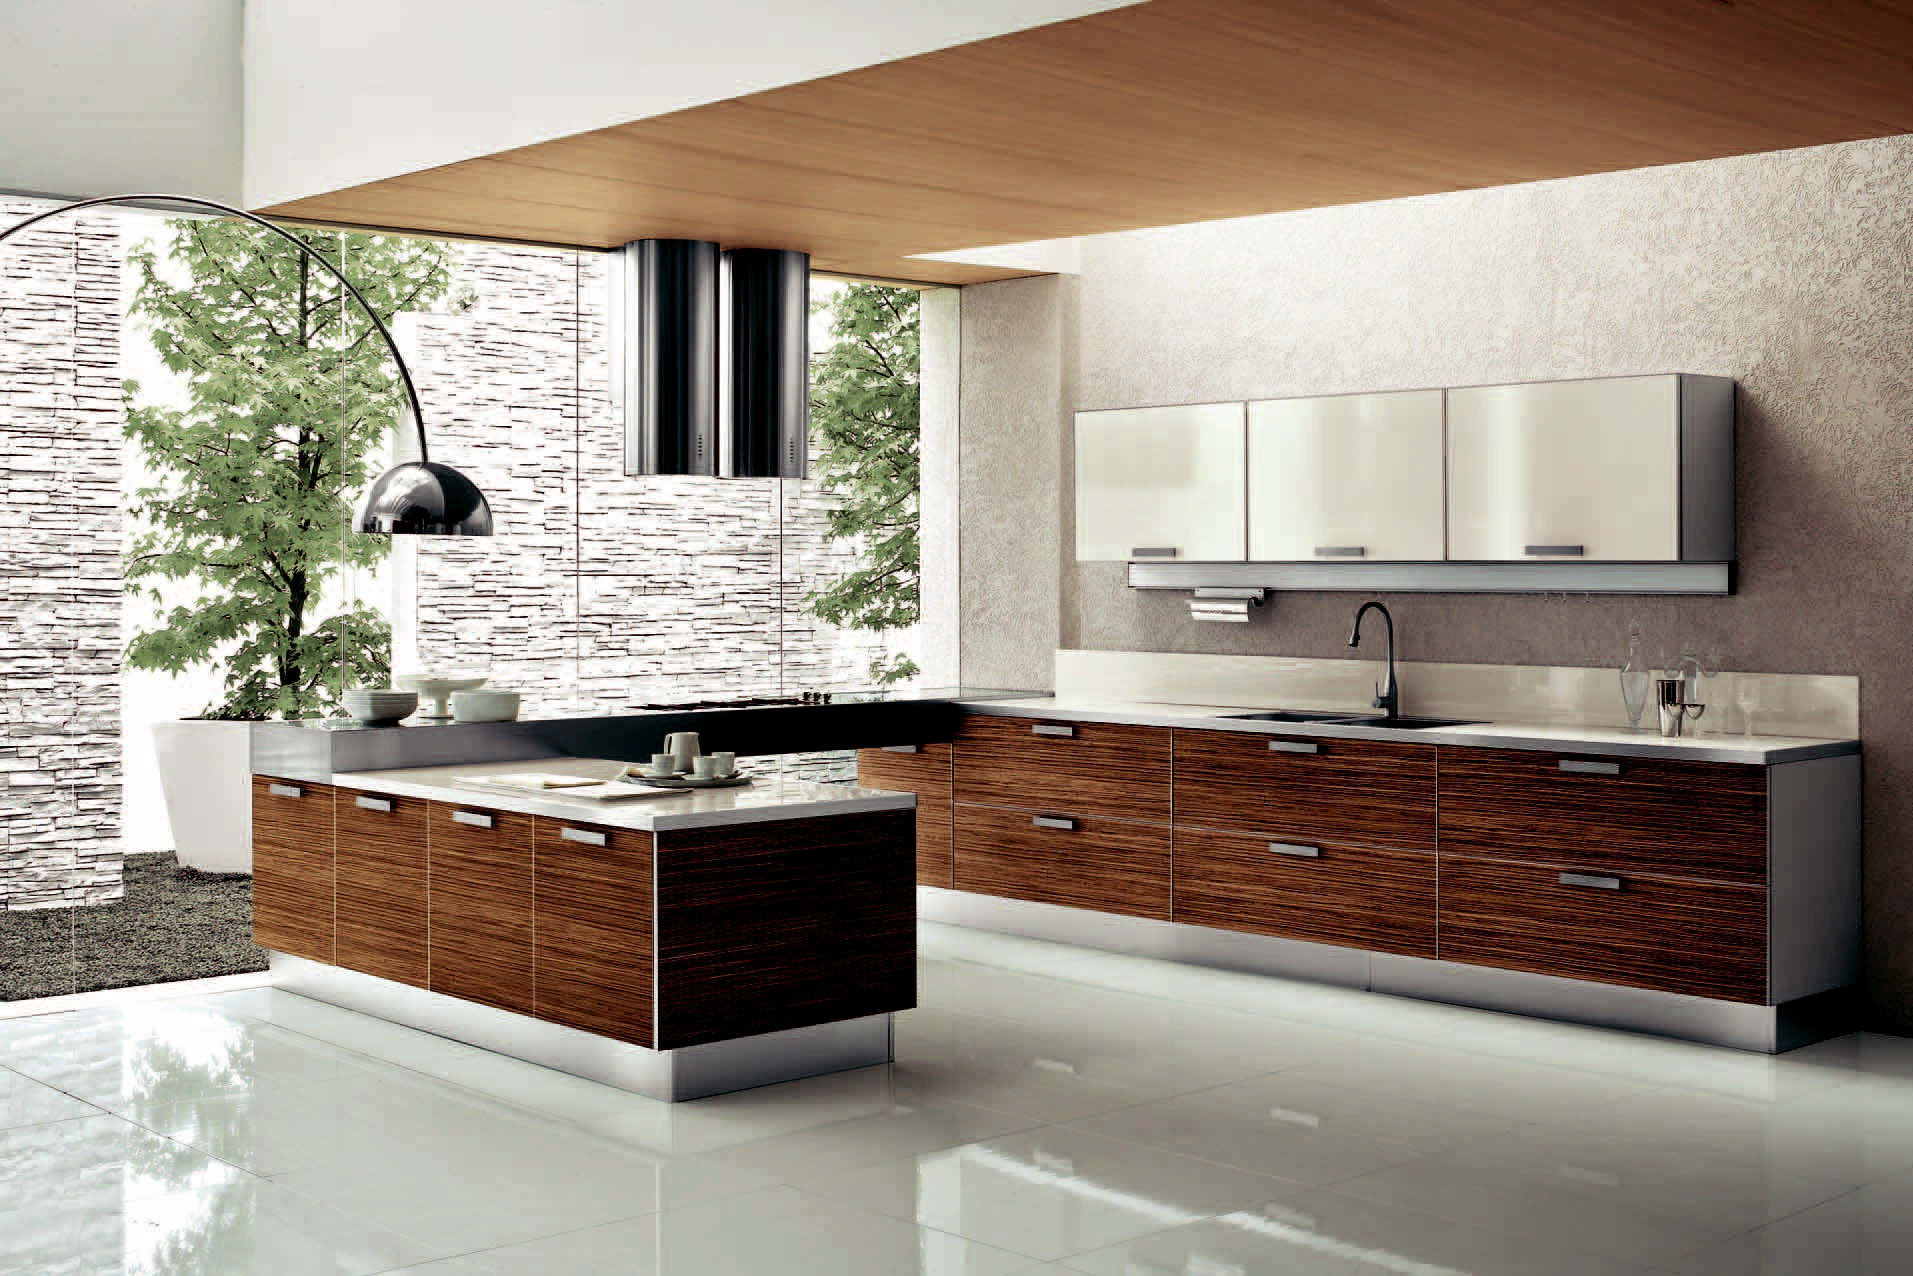 Beyond kitchens kitchen cupboards cape town kitchens for Interior design layout inspiration